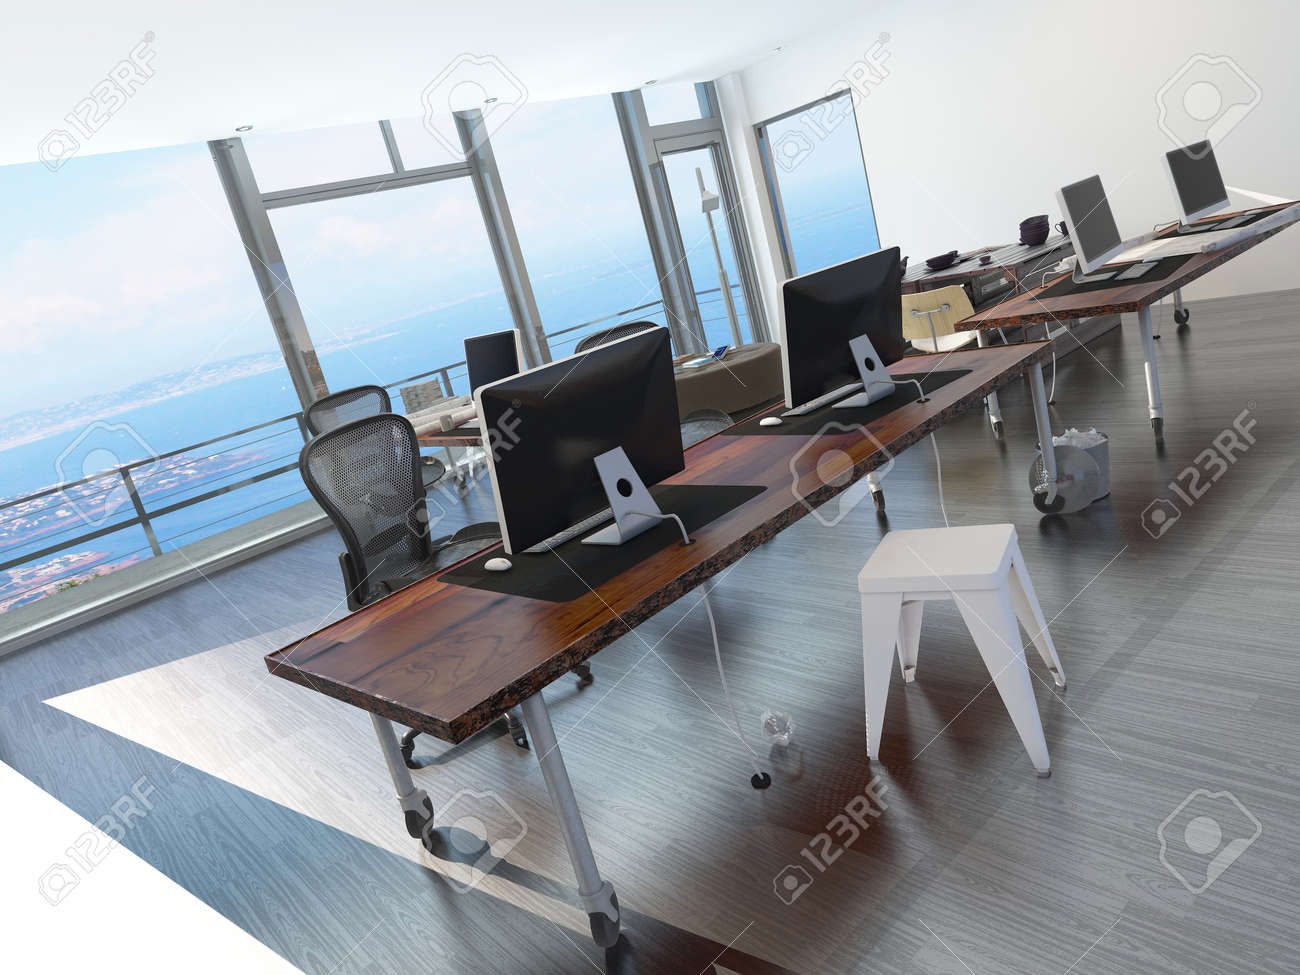 long office desks. Modern Minimalist Coastal Office Overlooking The Sea With A Long Table Several Computer Workstations Desks